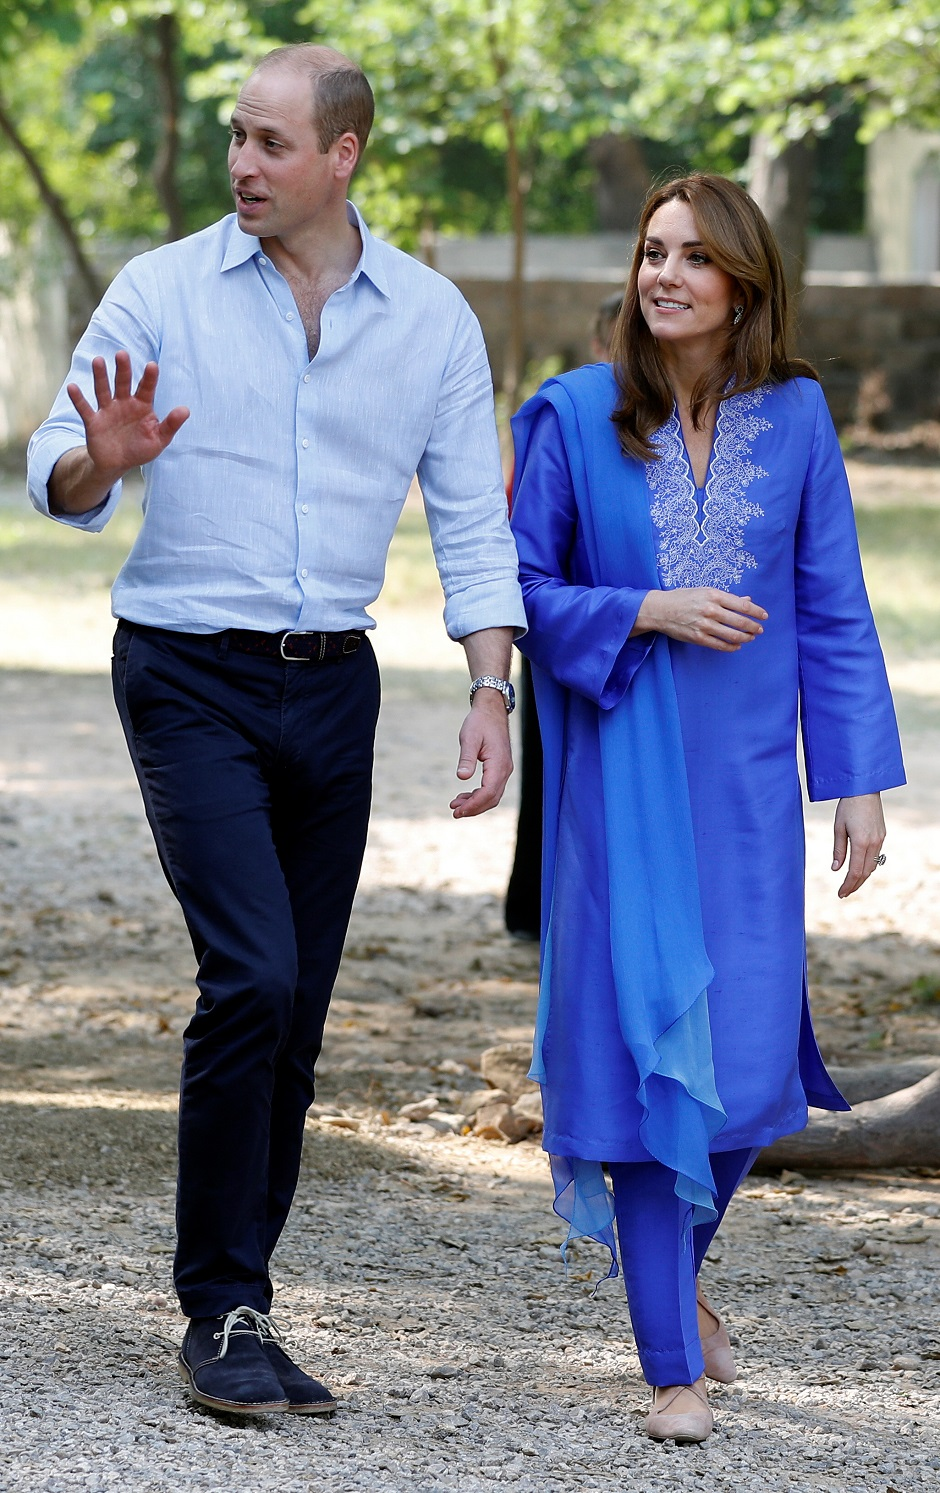 britain 039 s prince william and catherine duchess of cambridge arrive at margalla hills in islamabad pakistan photo reuters